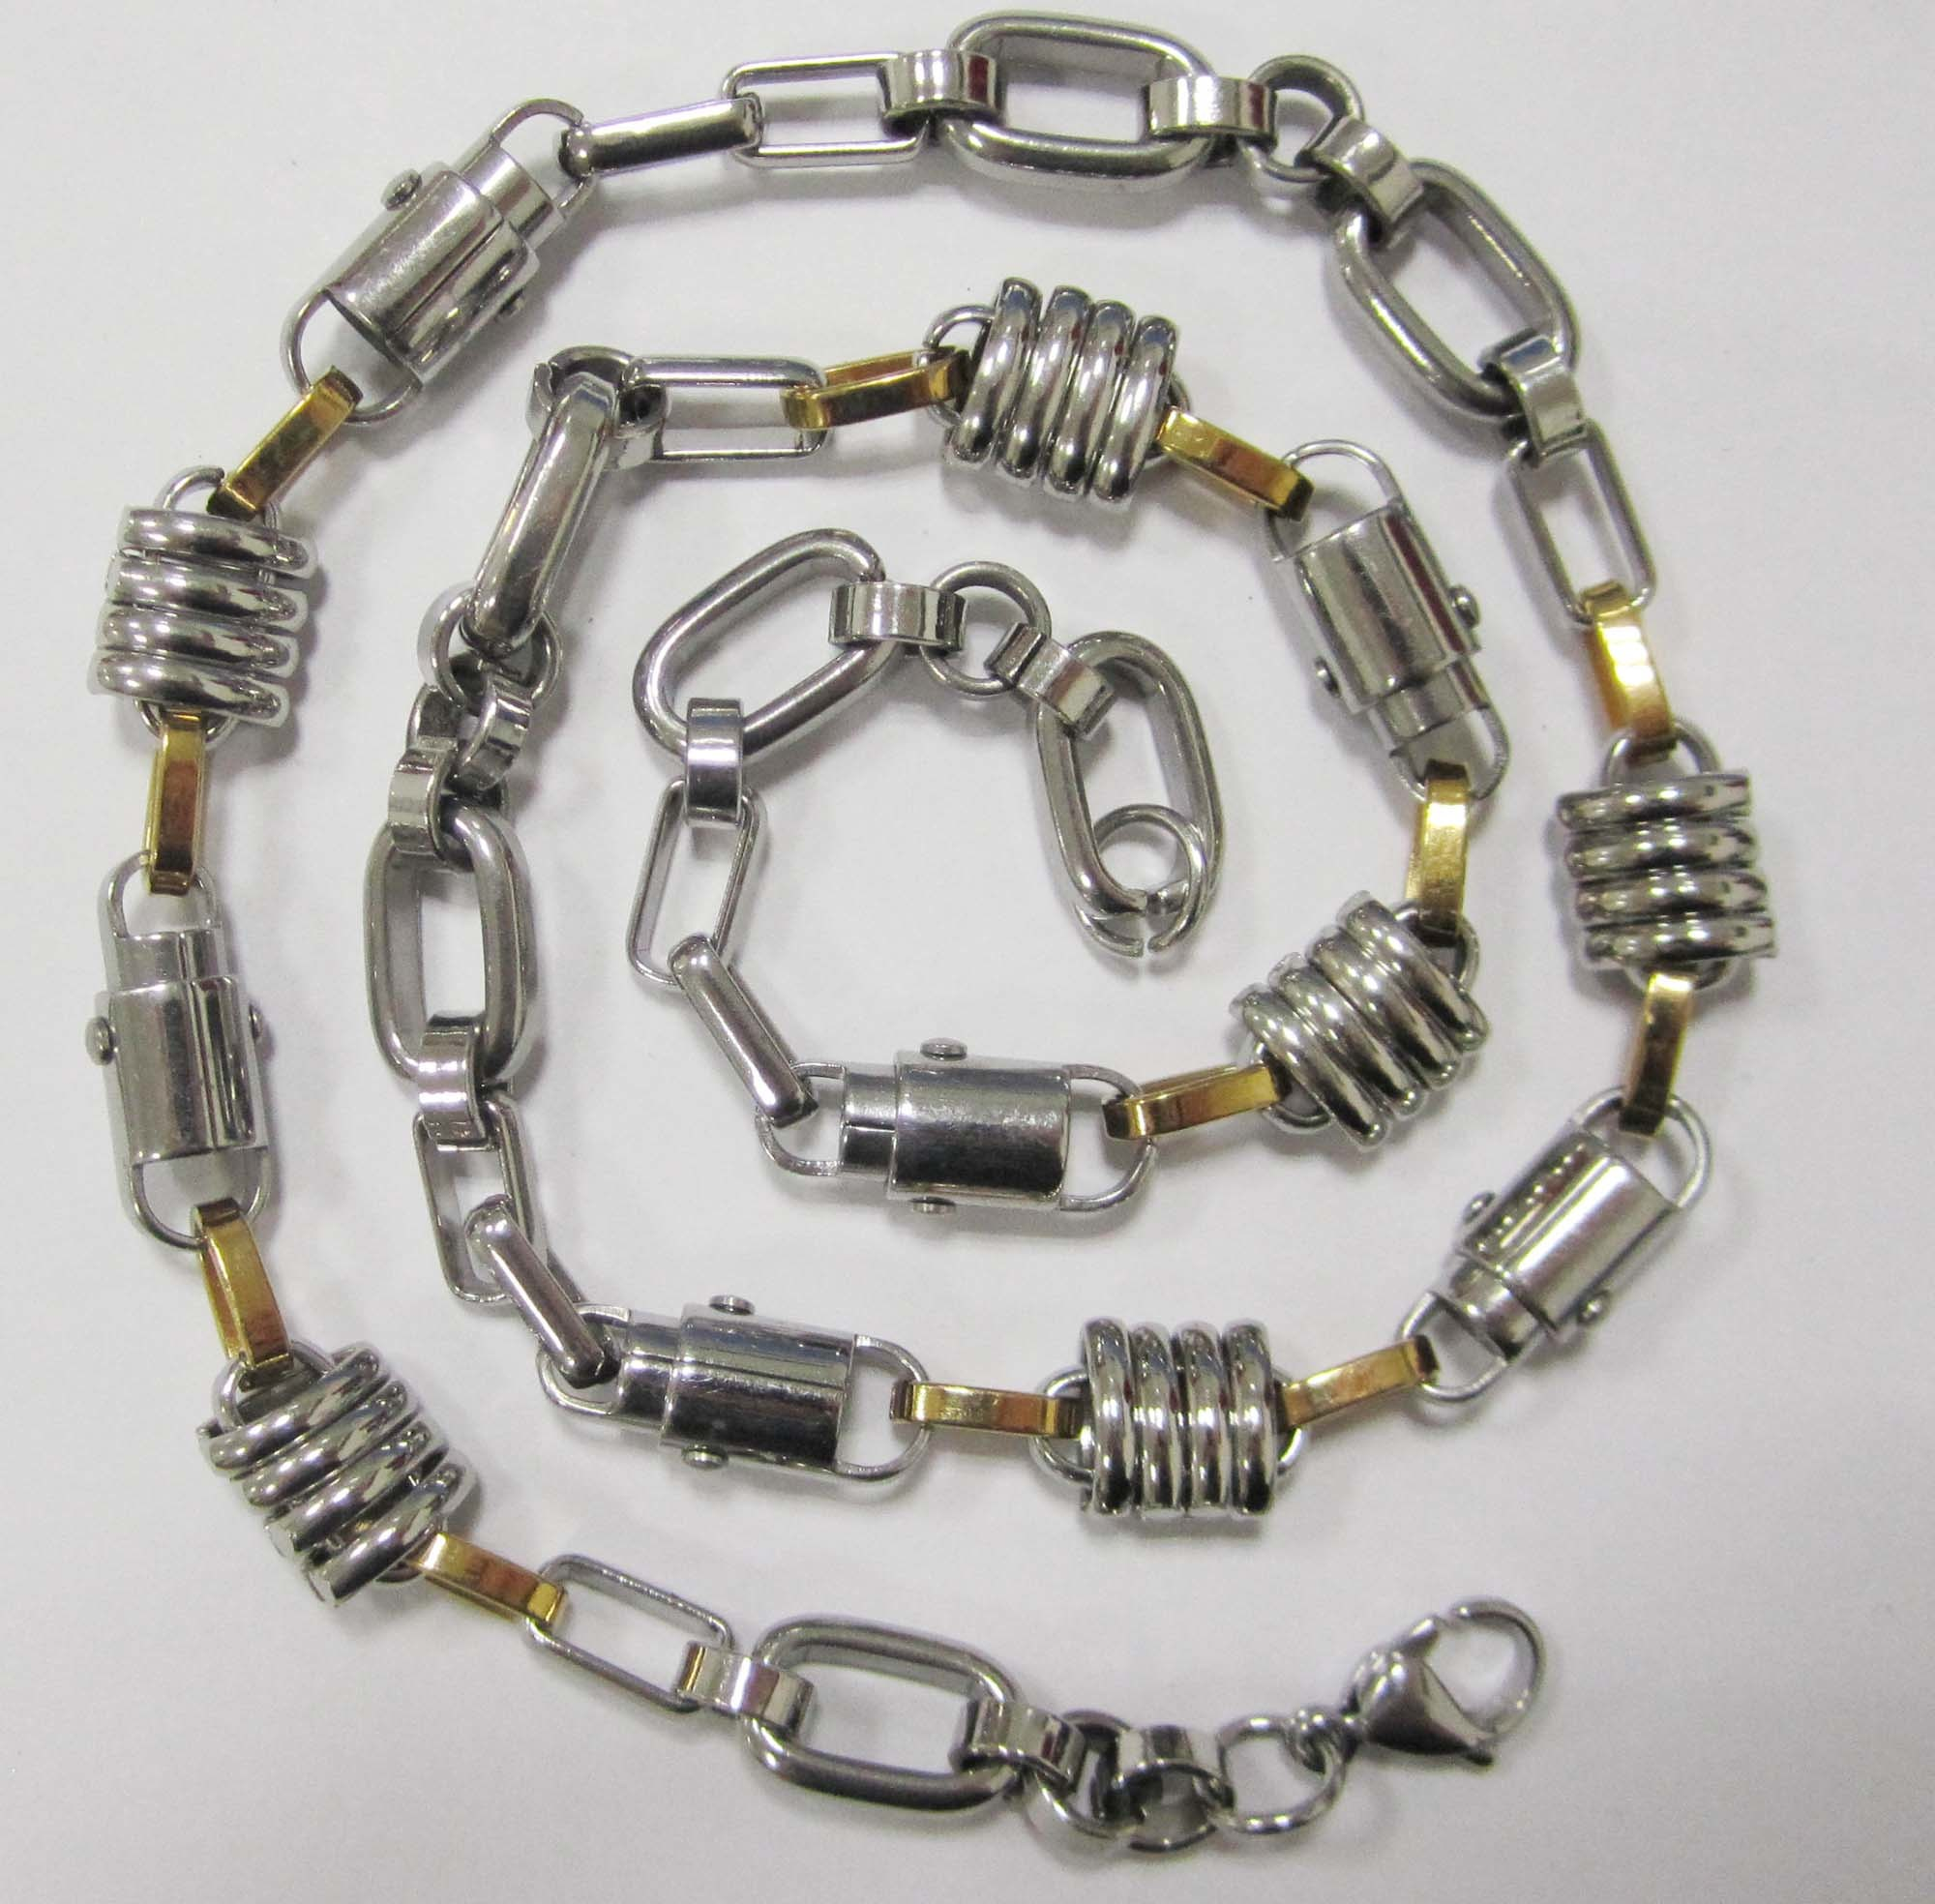 2014 China Factory 316L Stainless Steel Jewelry